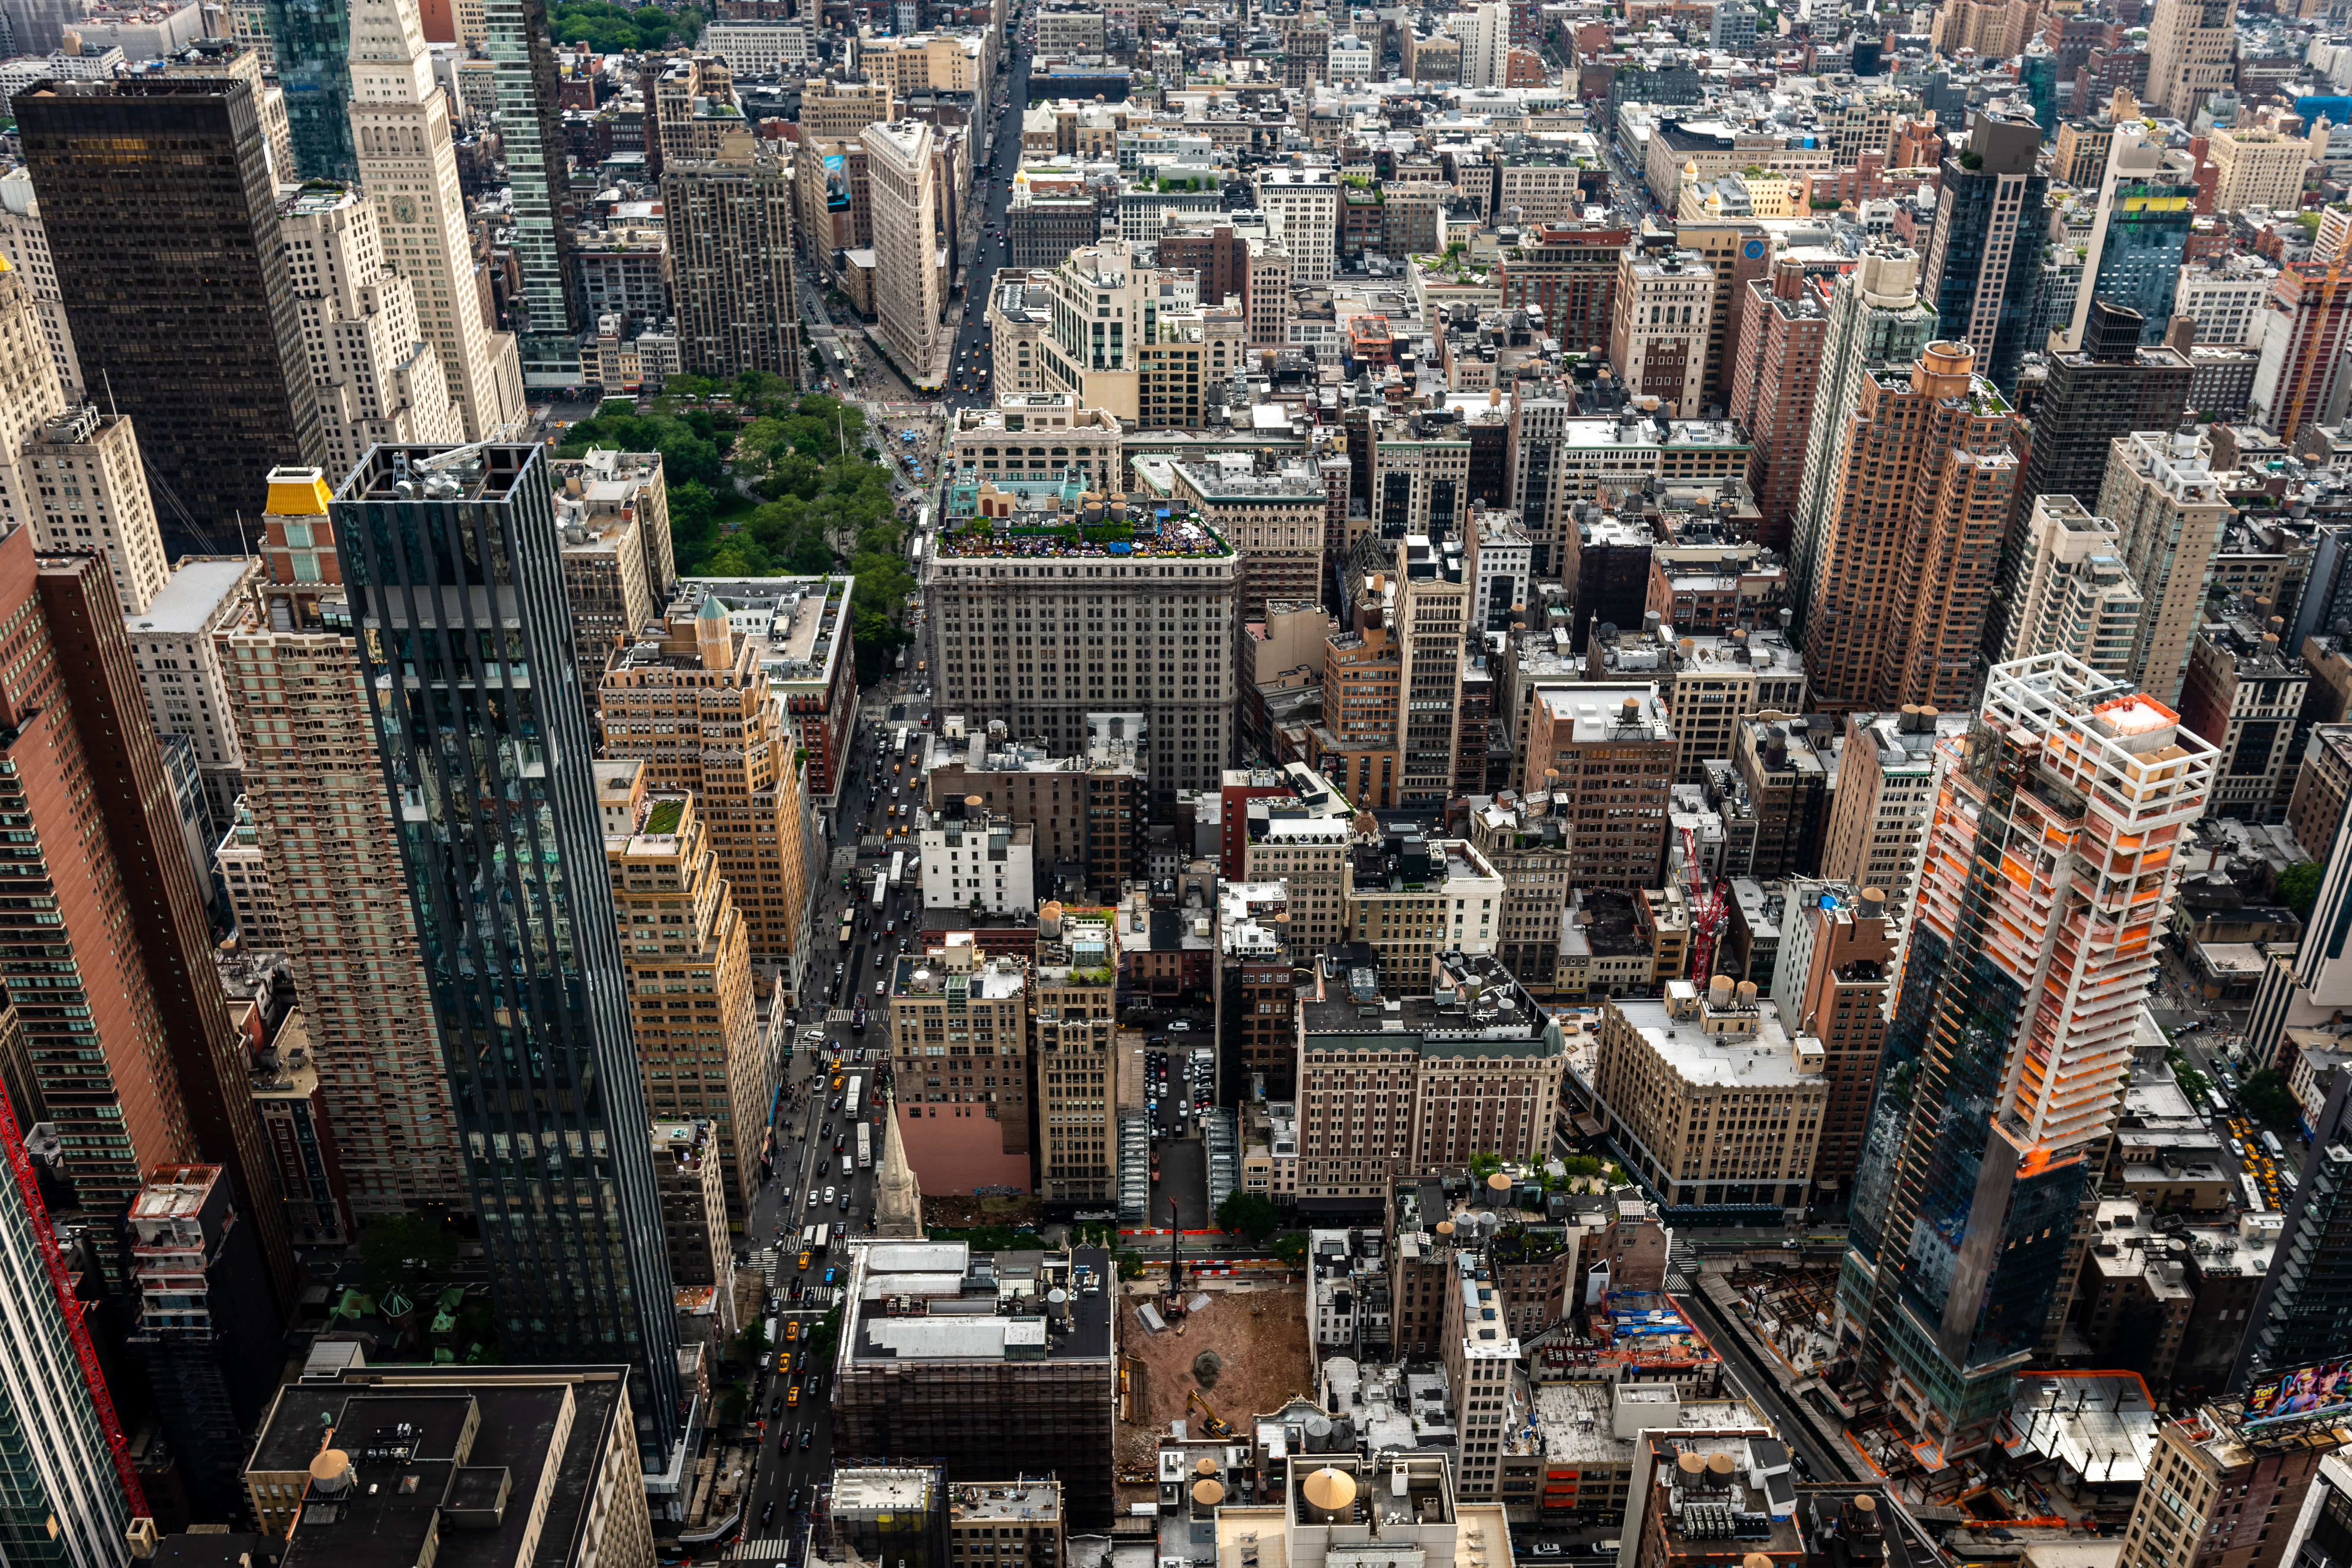 A view of NYC buildings from above.